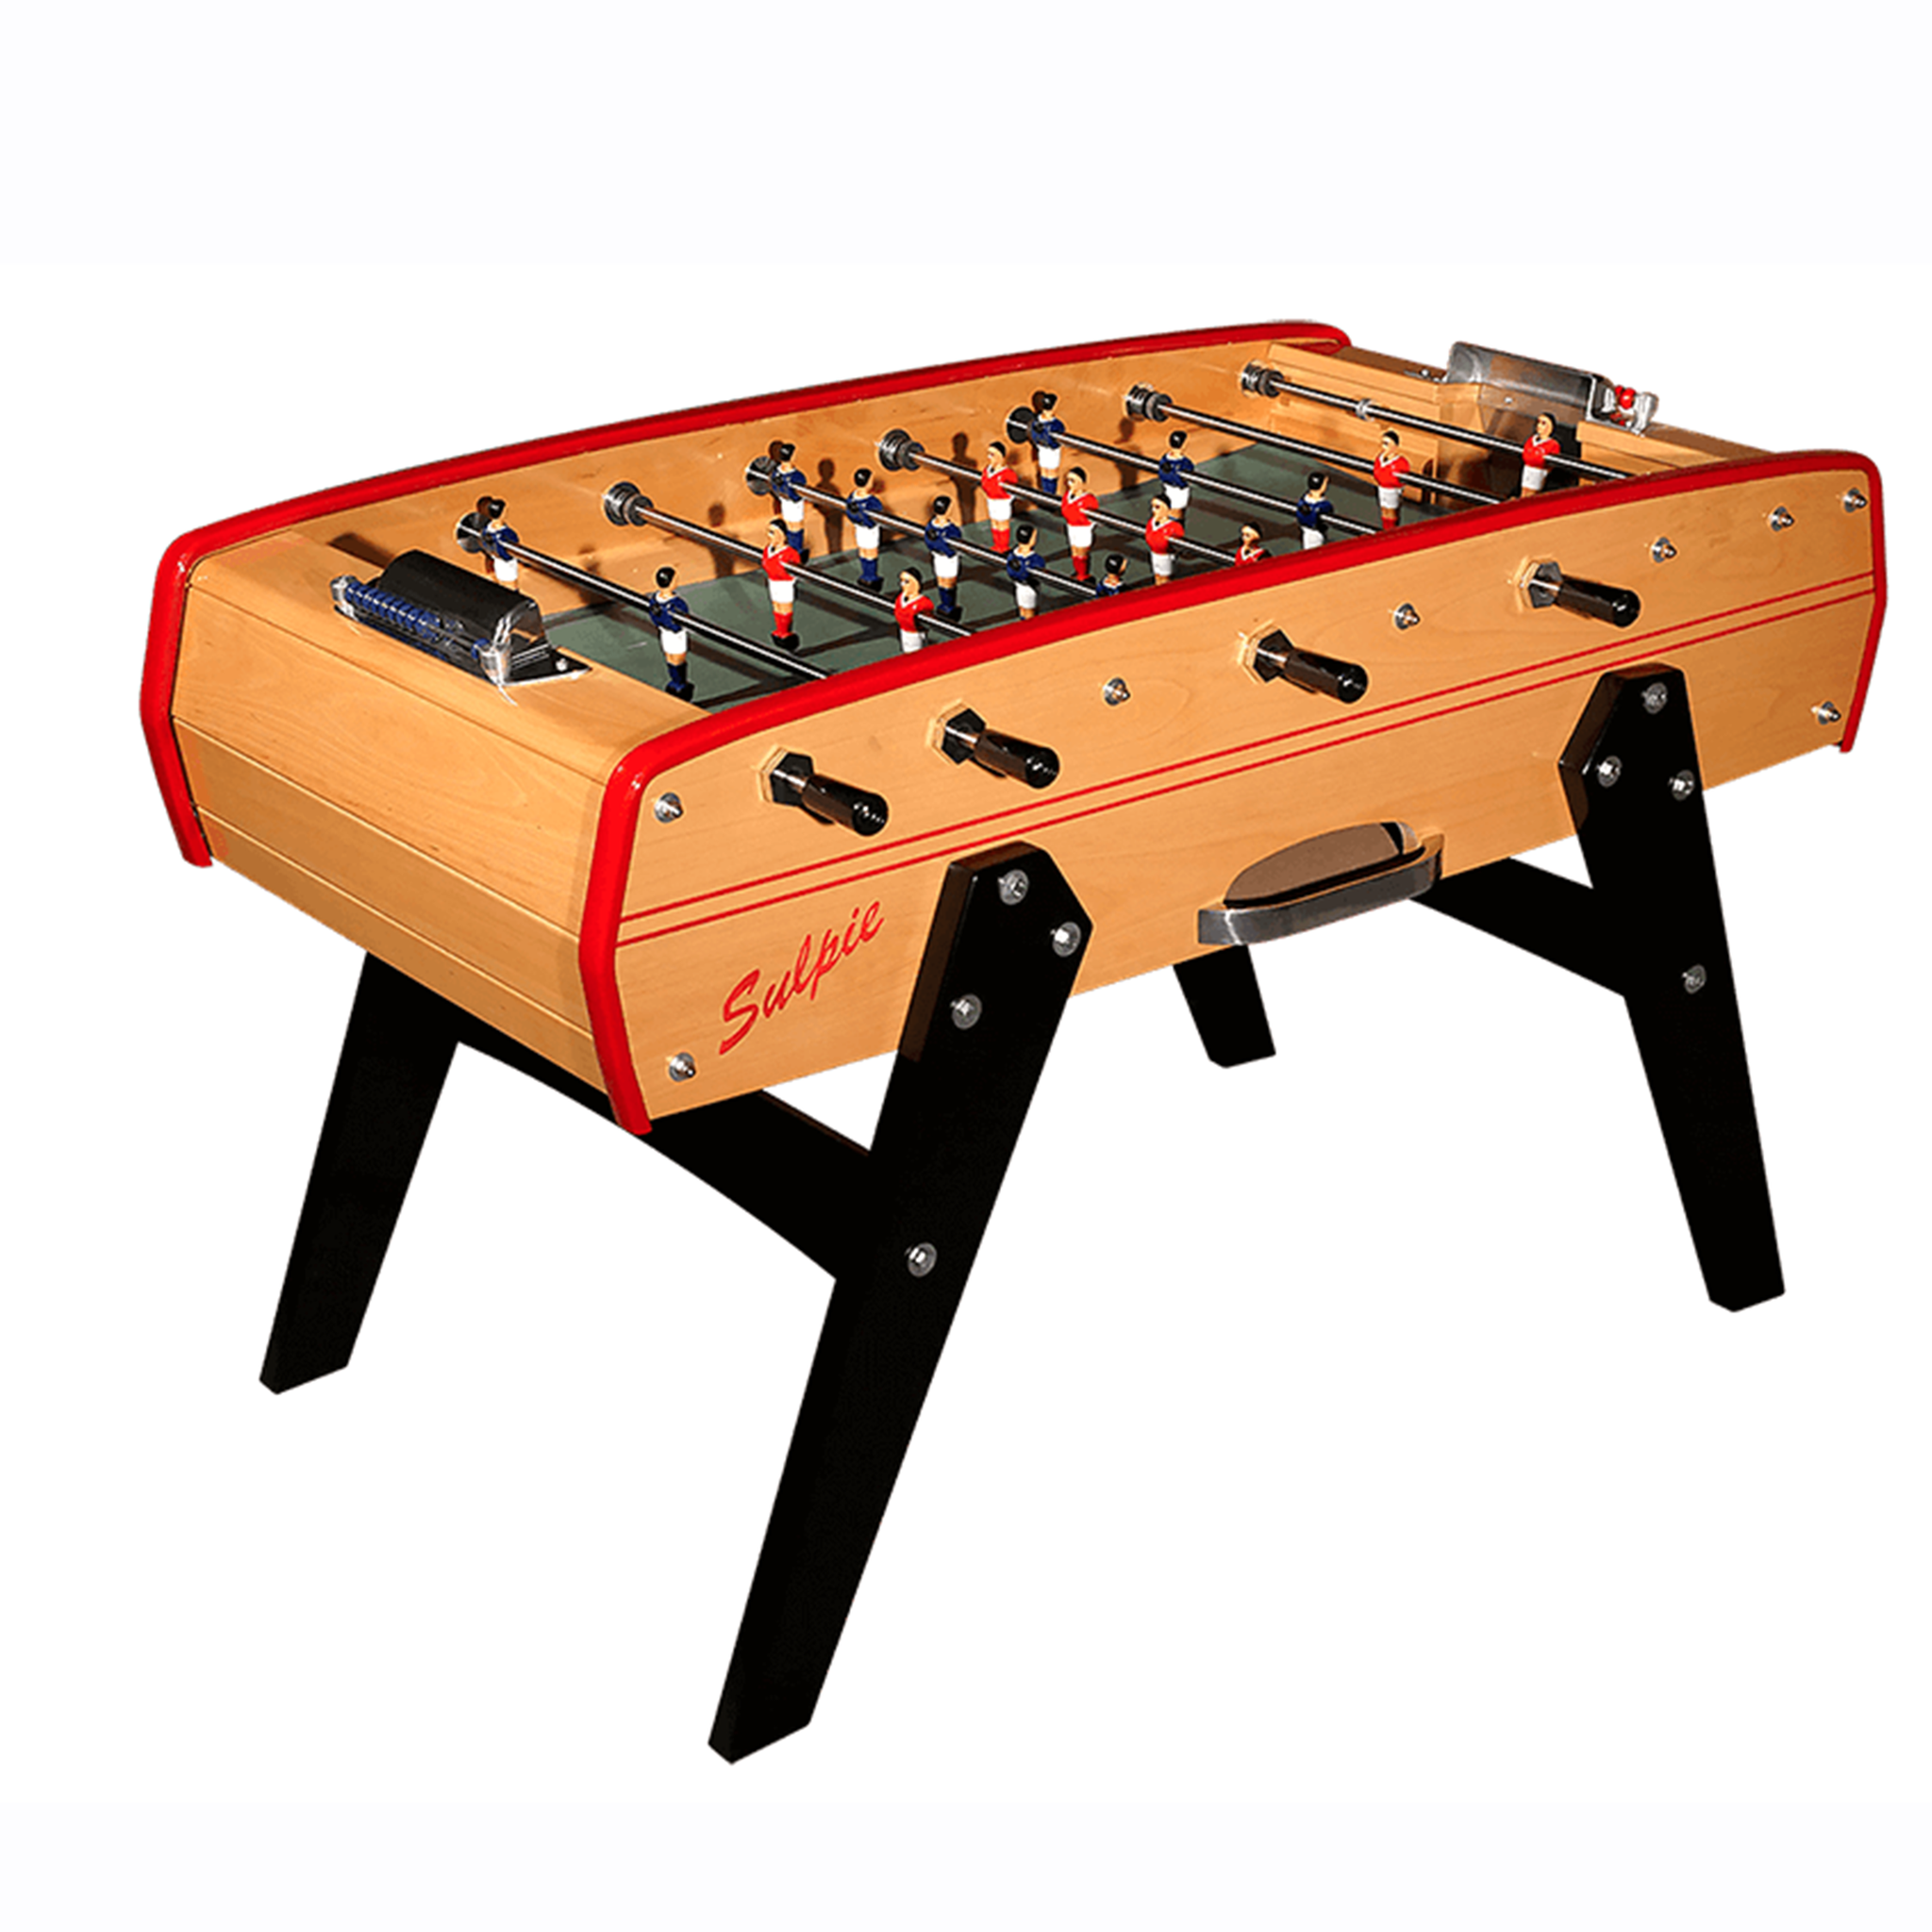 Sulpie Evolution Foosball Table with Red Trim